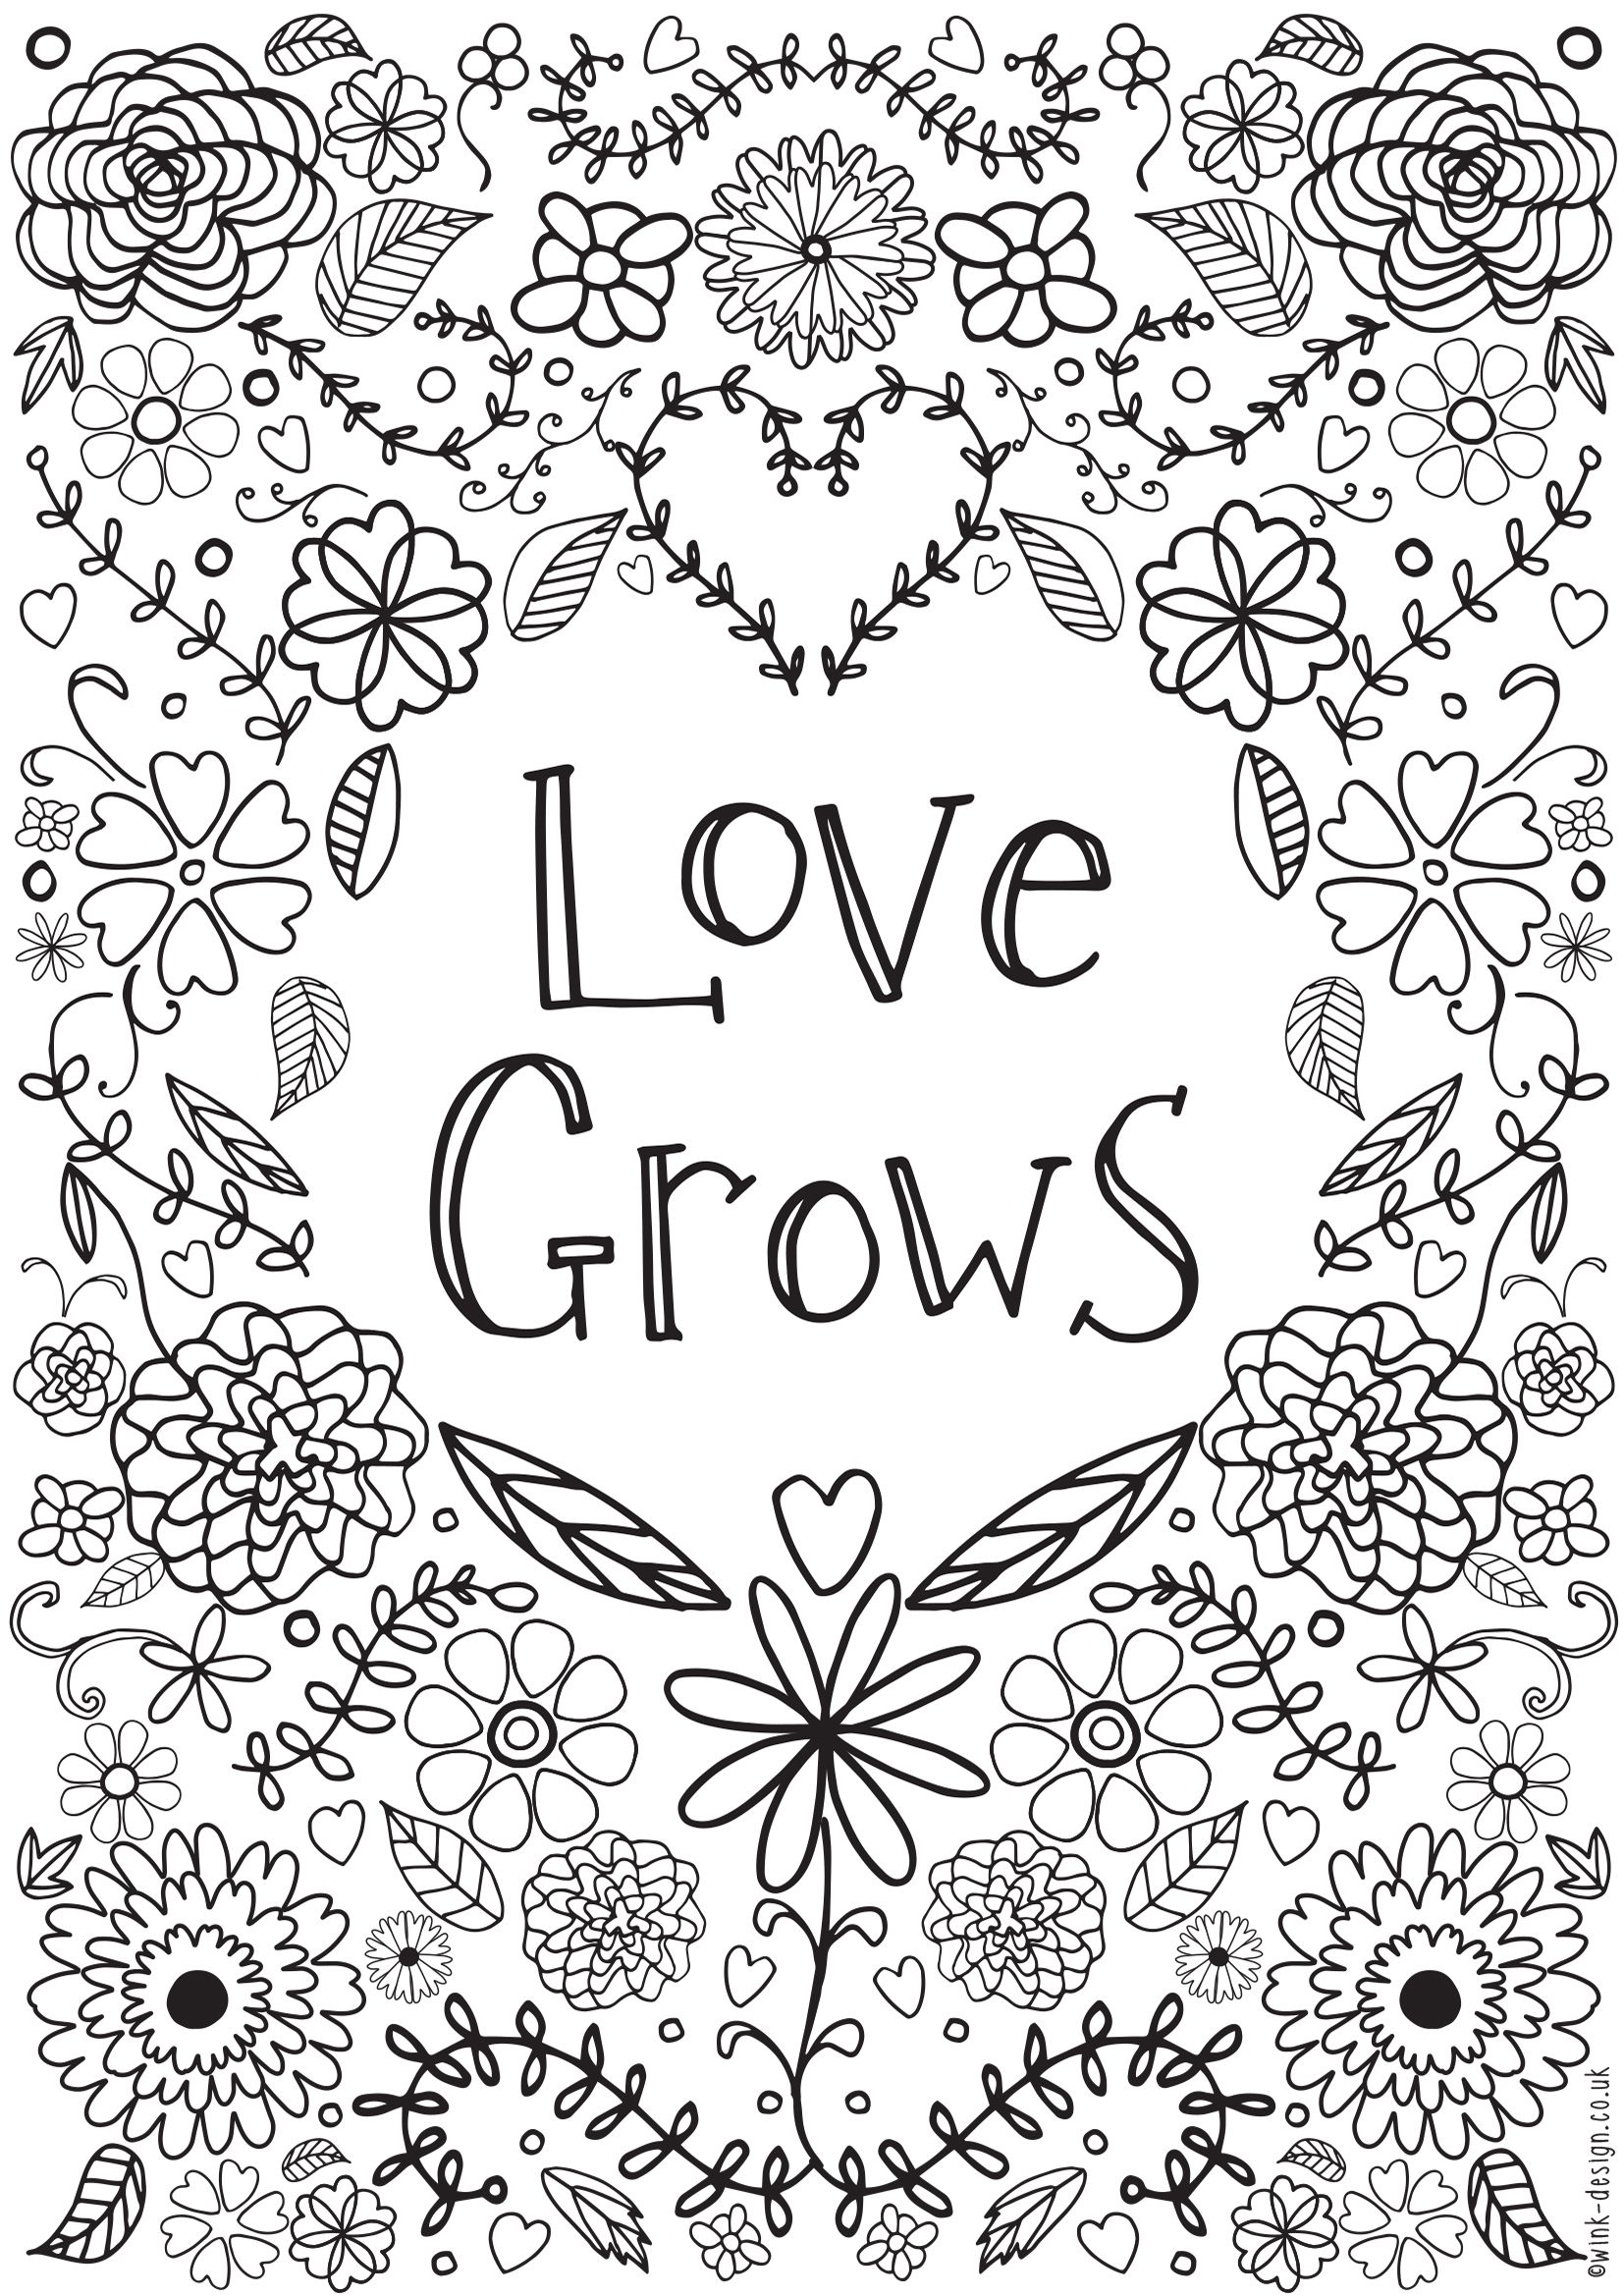 Love Grows Colouring Adult Coloring Free Printable And